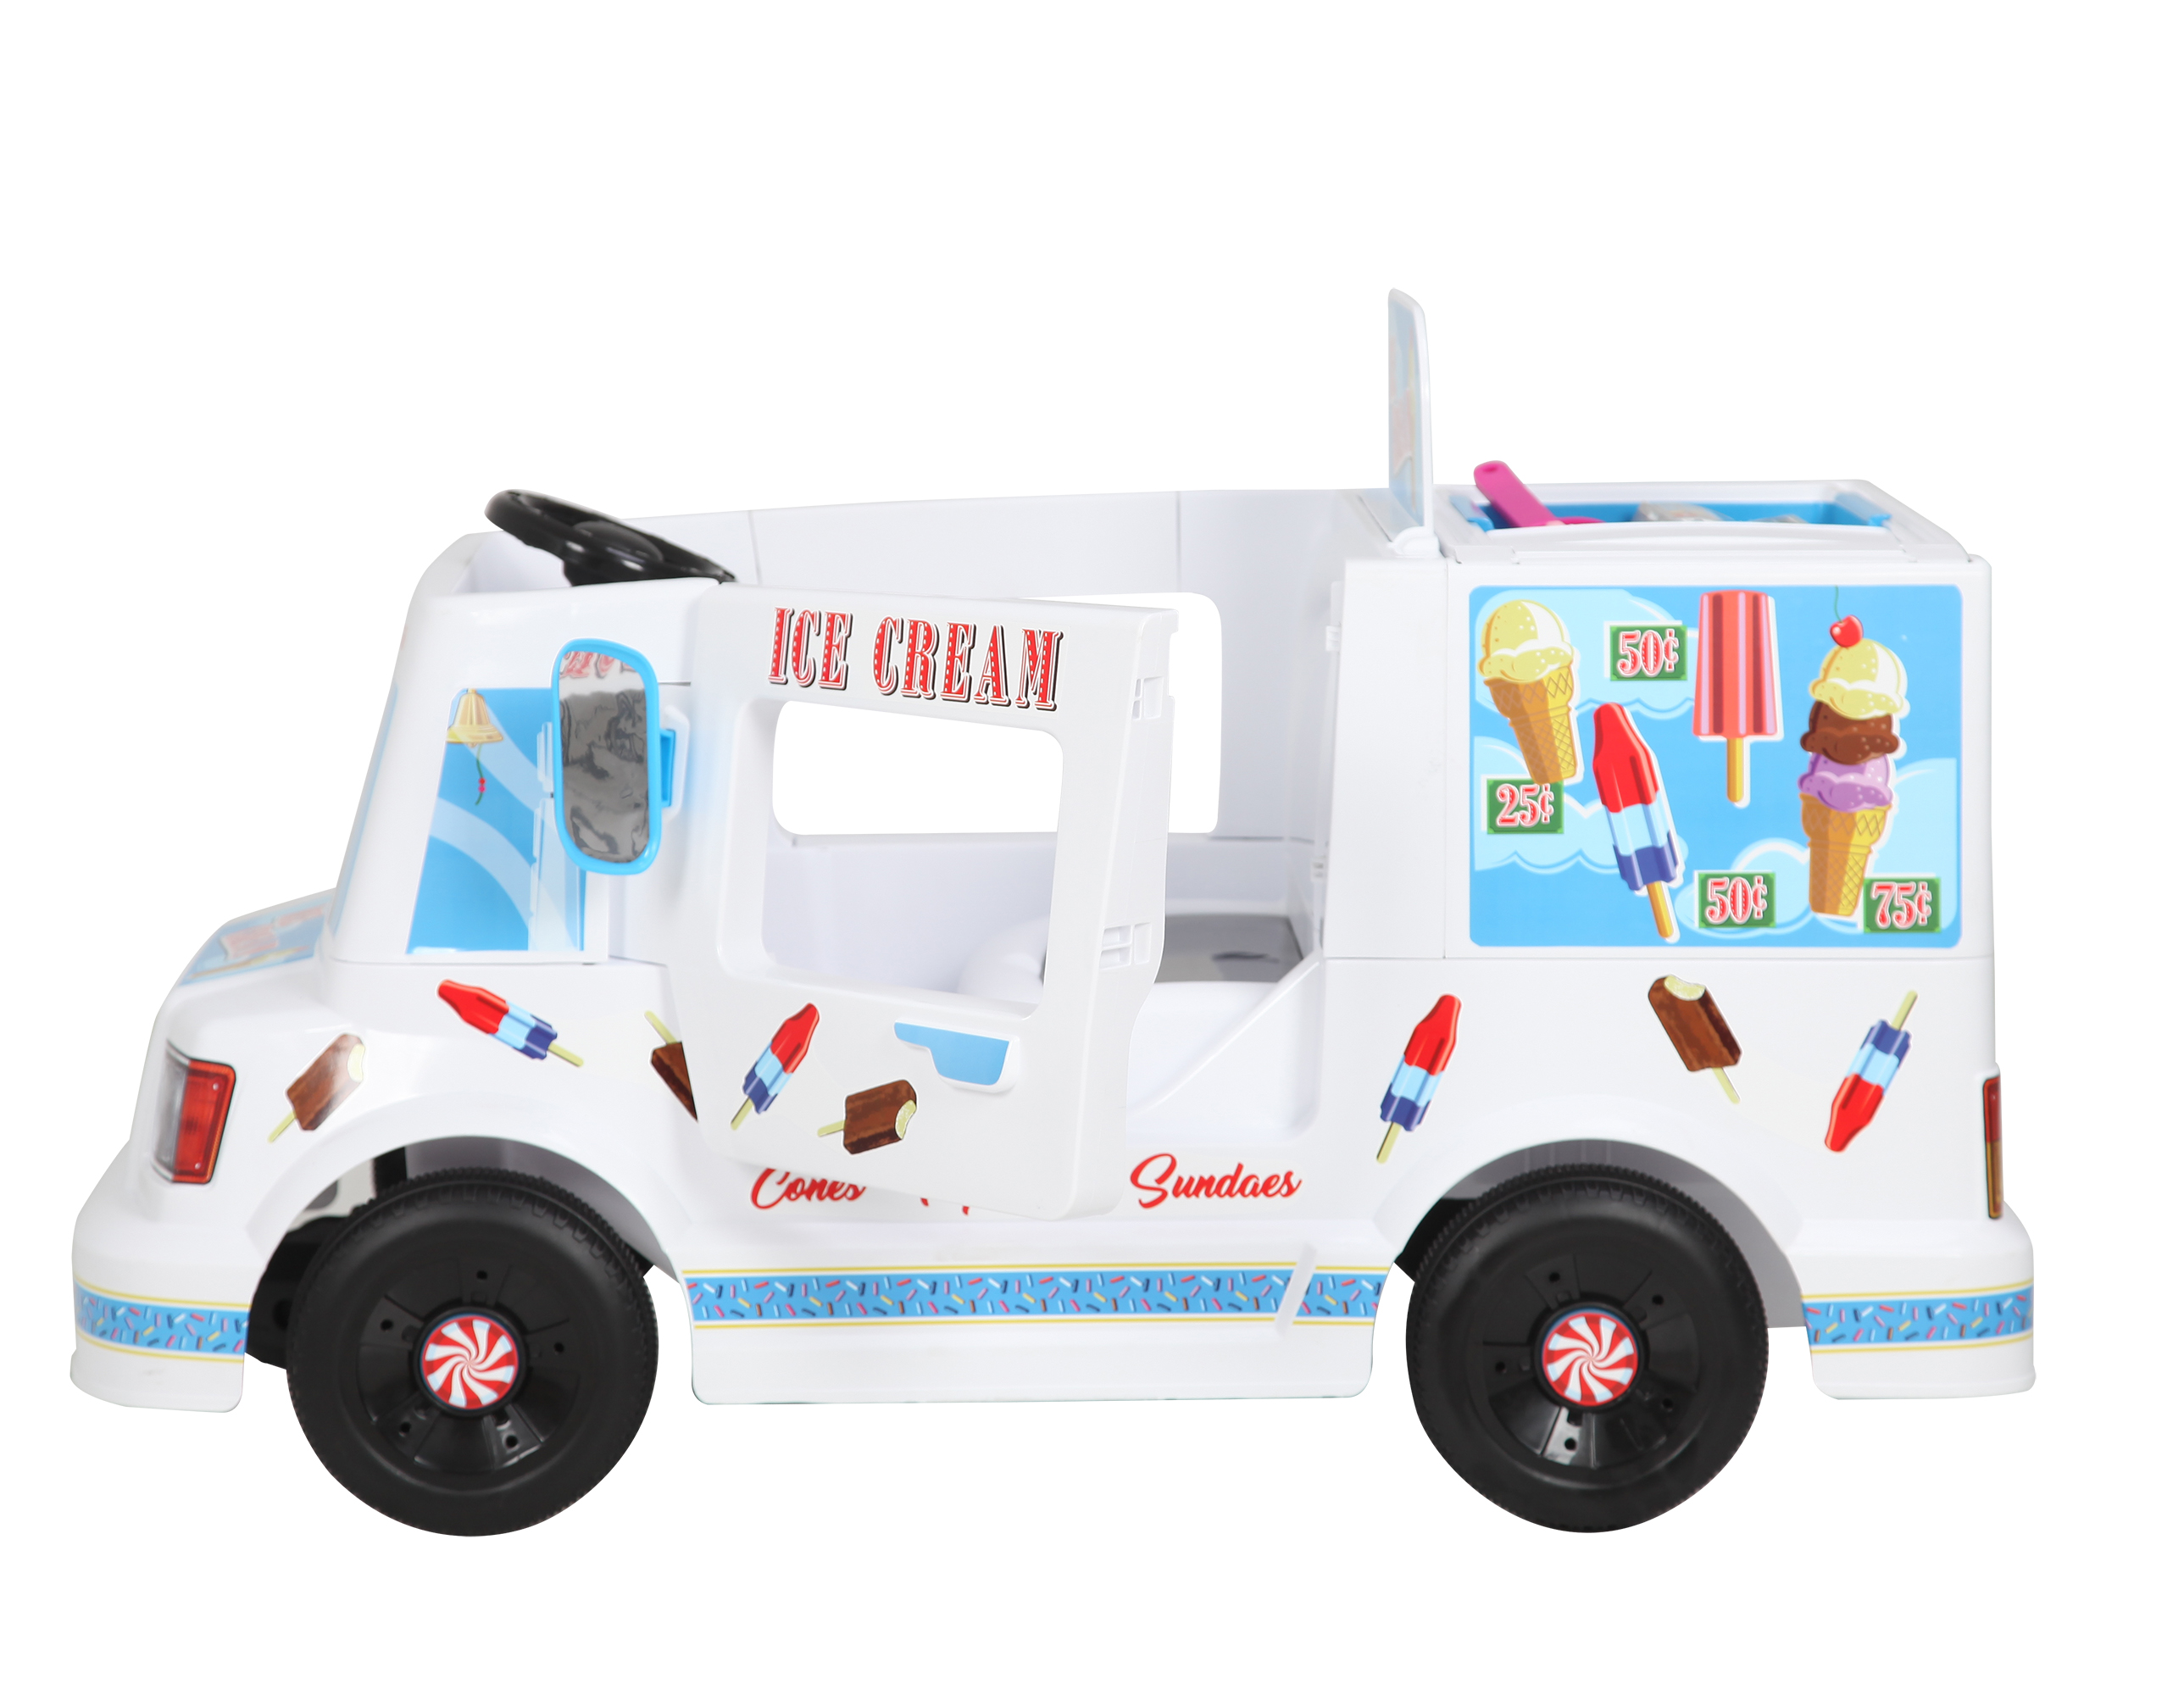 rollplay 6 volt ezsteer ice cream truck ride on toy battery powered